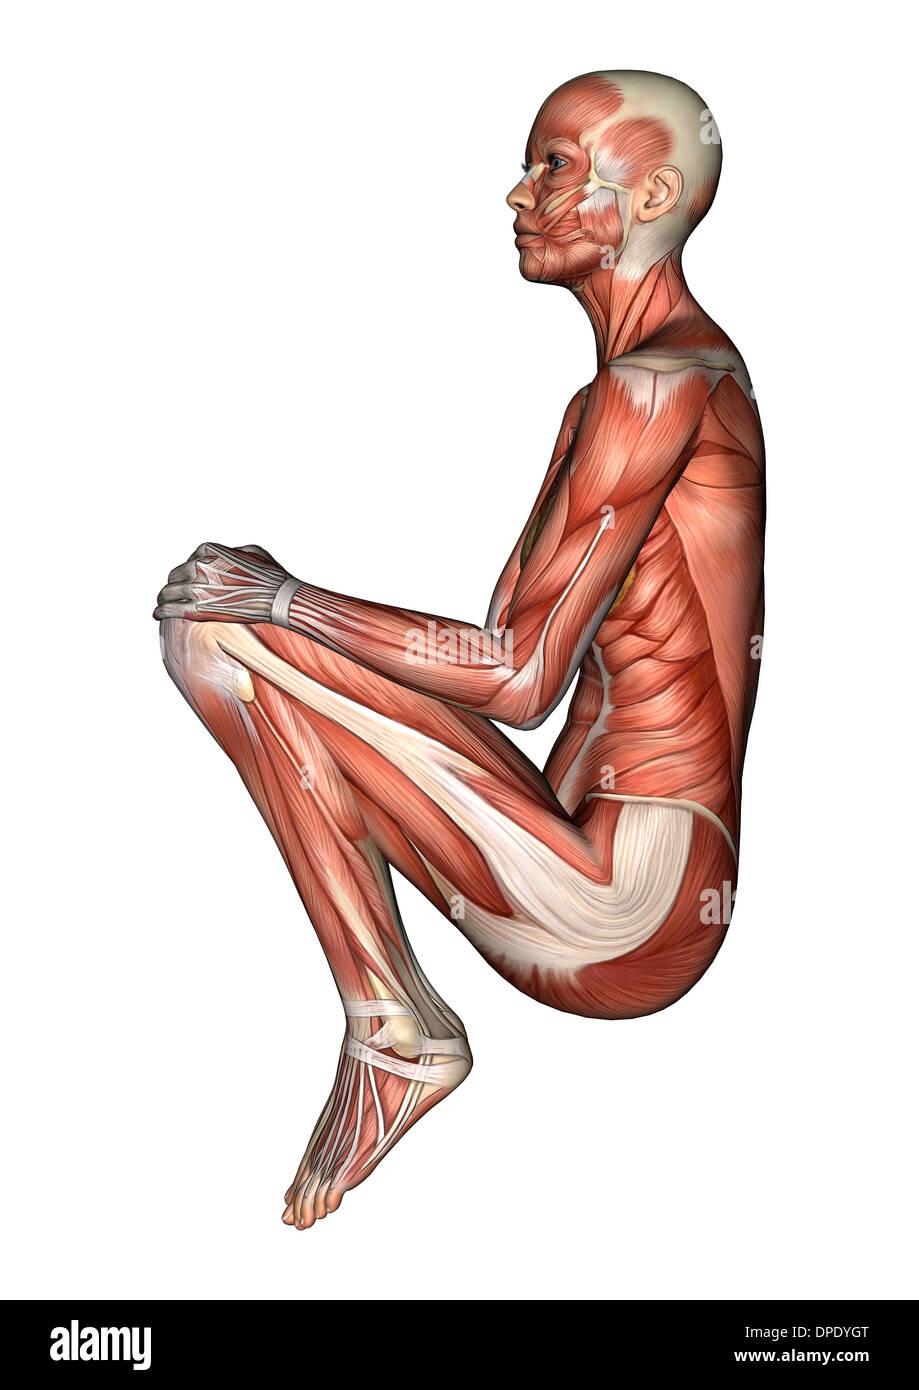 3D digital render of a sitting female anatomy figure with muscles ...